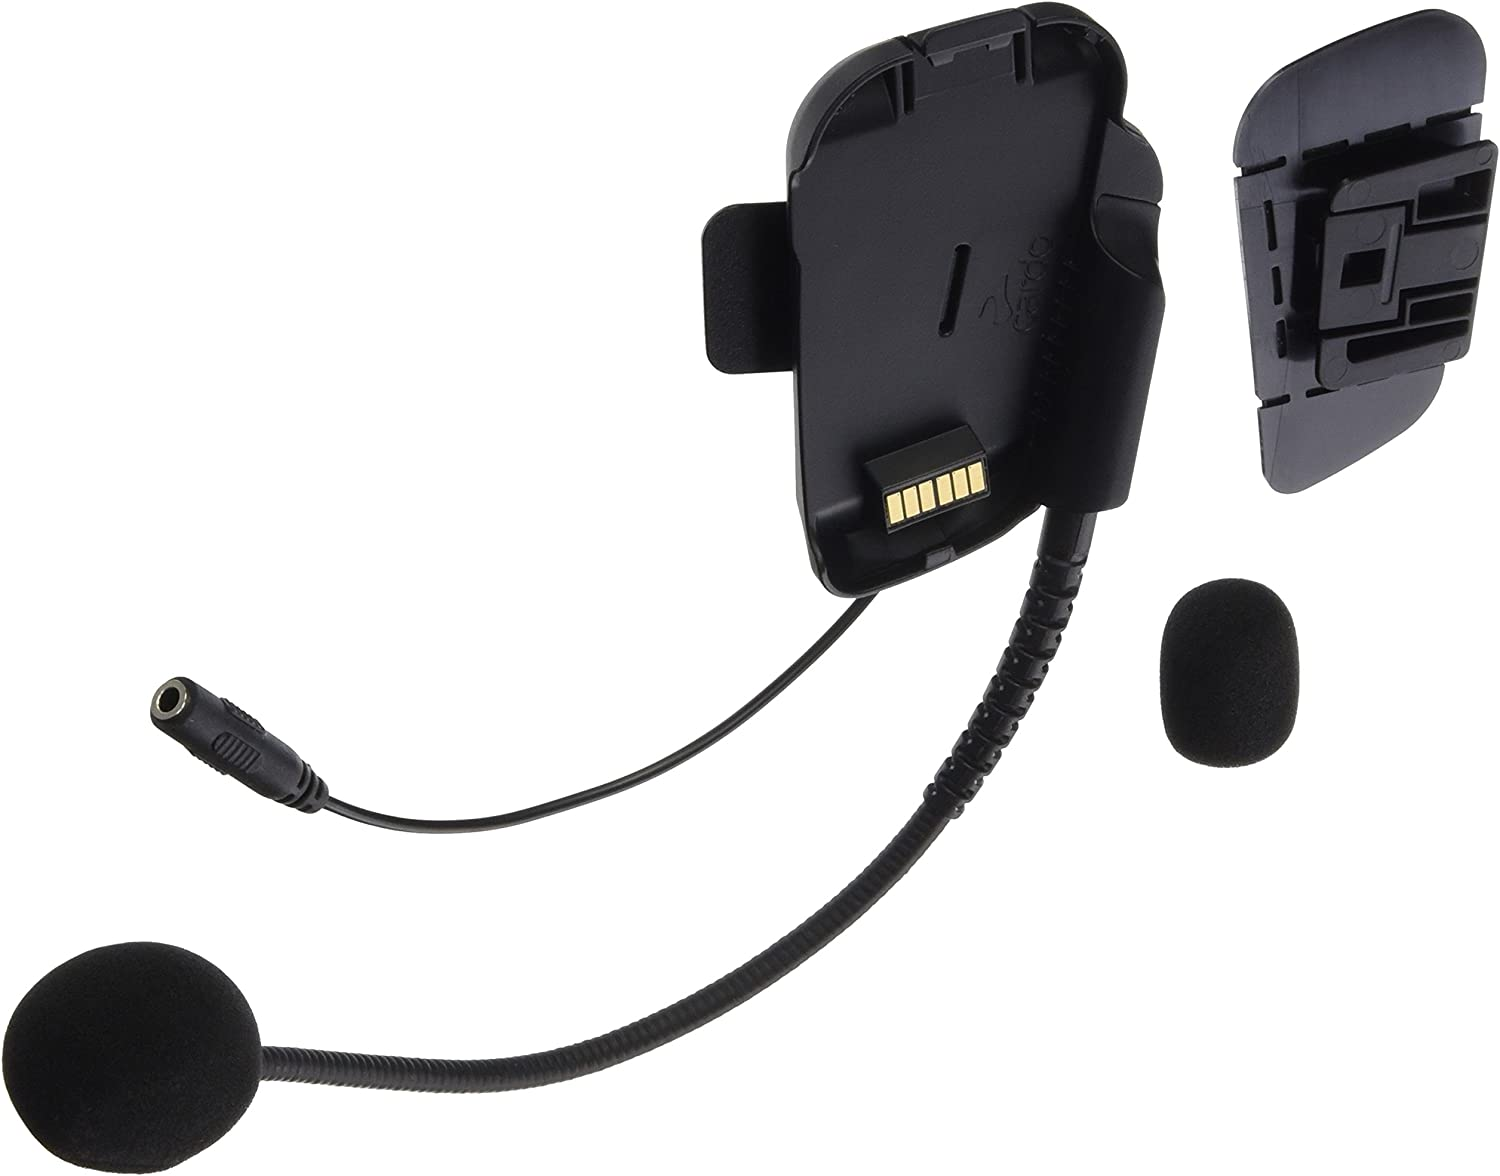 for PackTalk and SmartPack Systems Black Single Pack scala rider SPPT0002 Cardo Unisex-Adult Boom Microphone Cradle